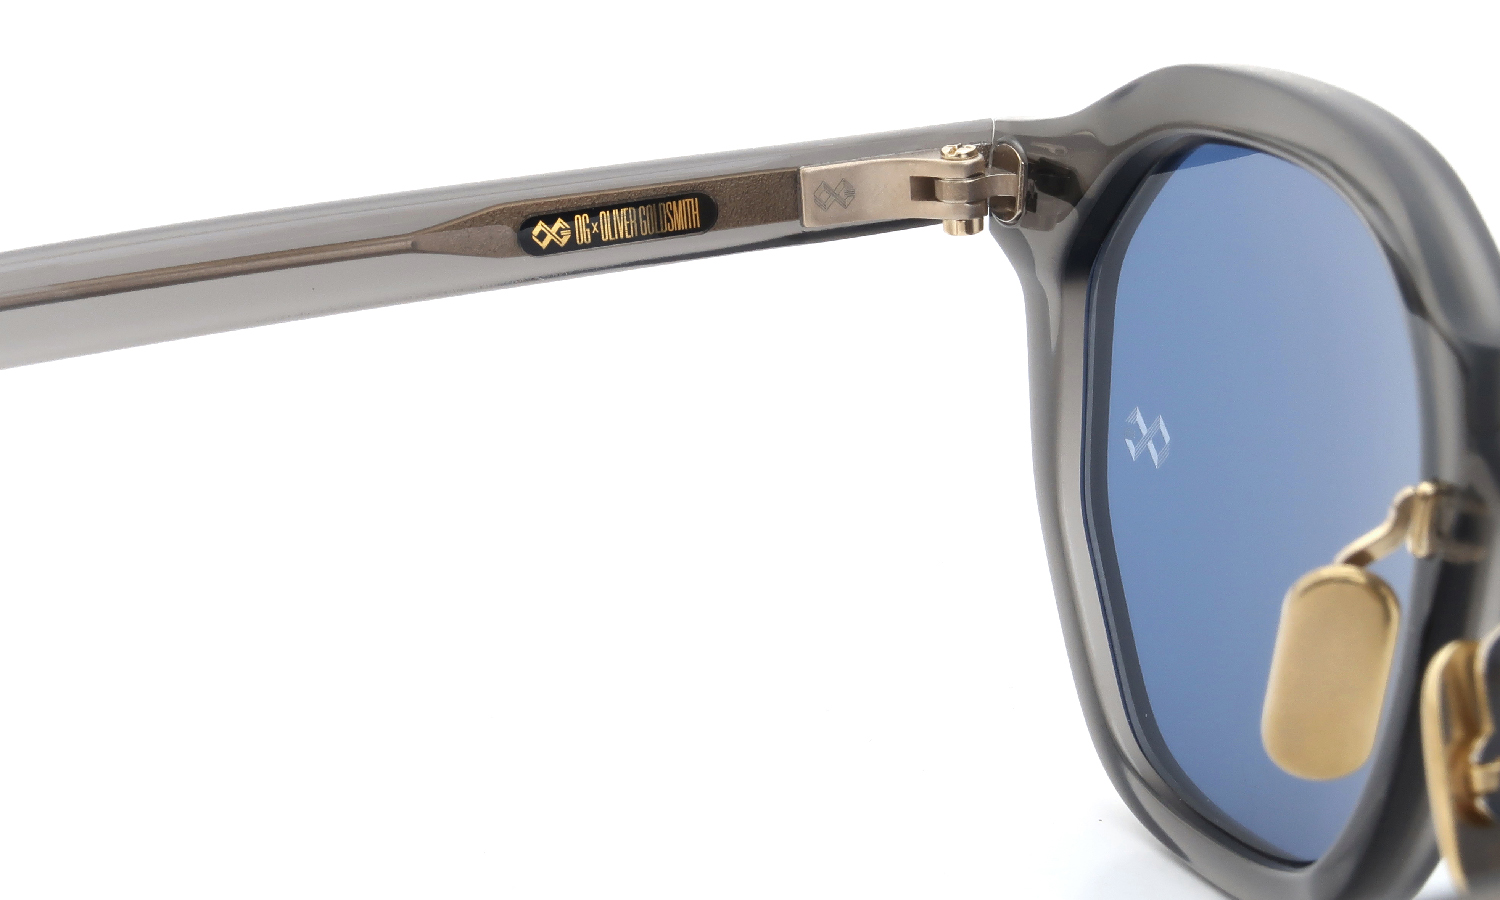 OG × OLIVER GOLDSMITH Re:BETSY 49 SG リ:ベッツィ 9